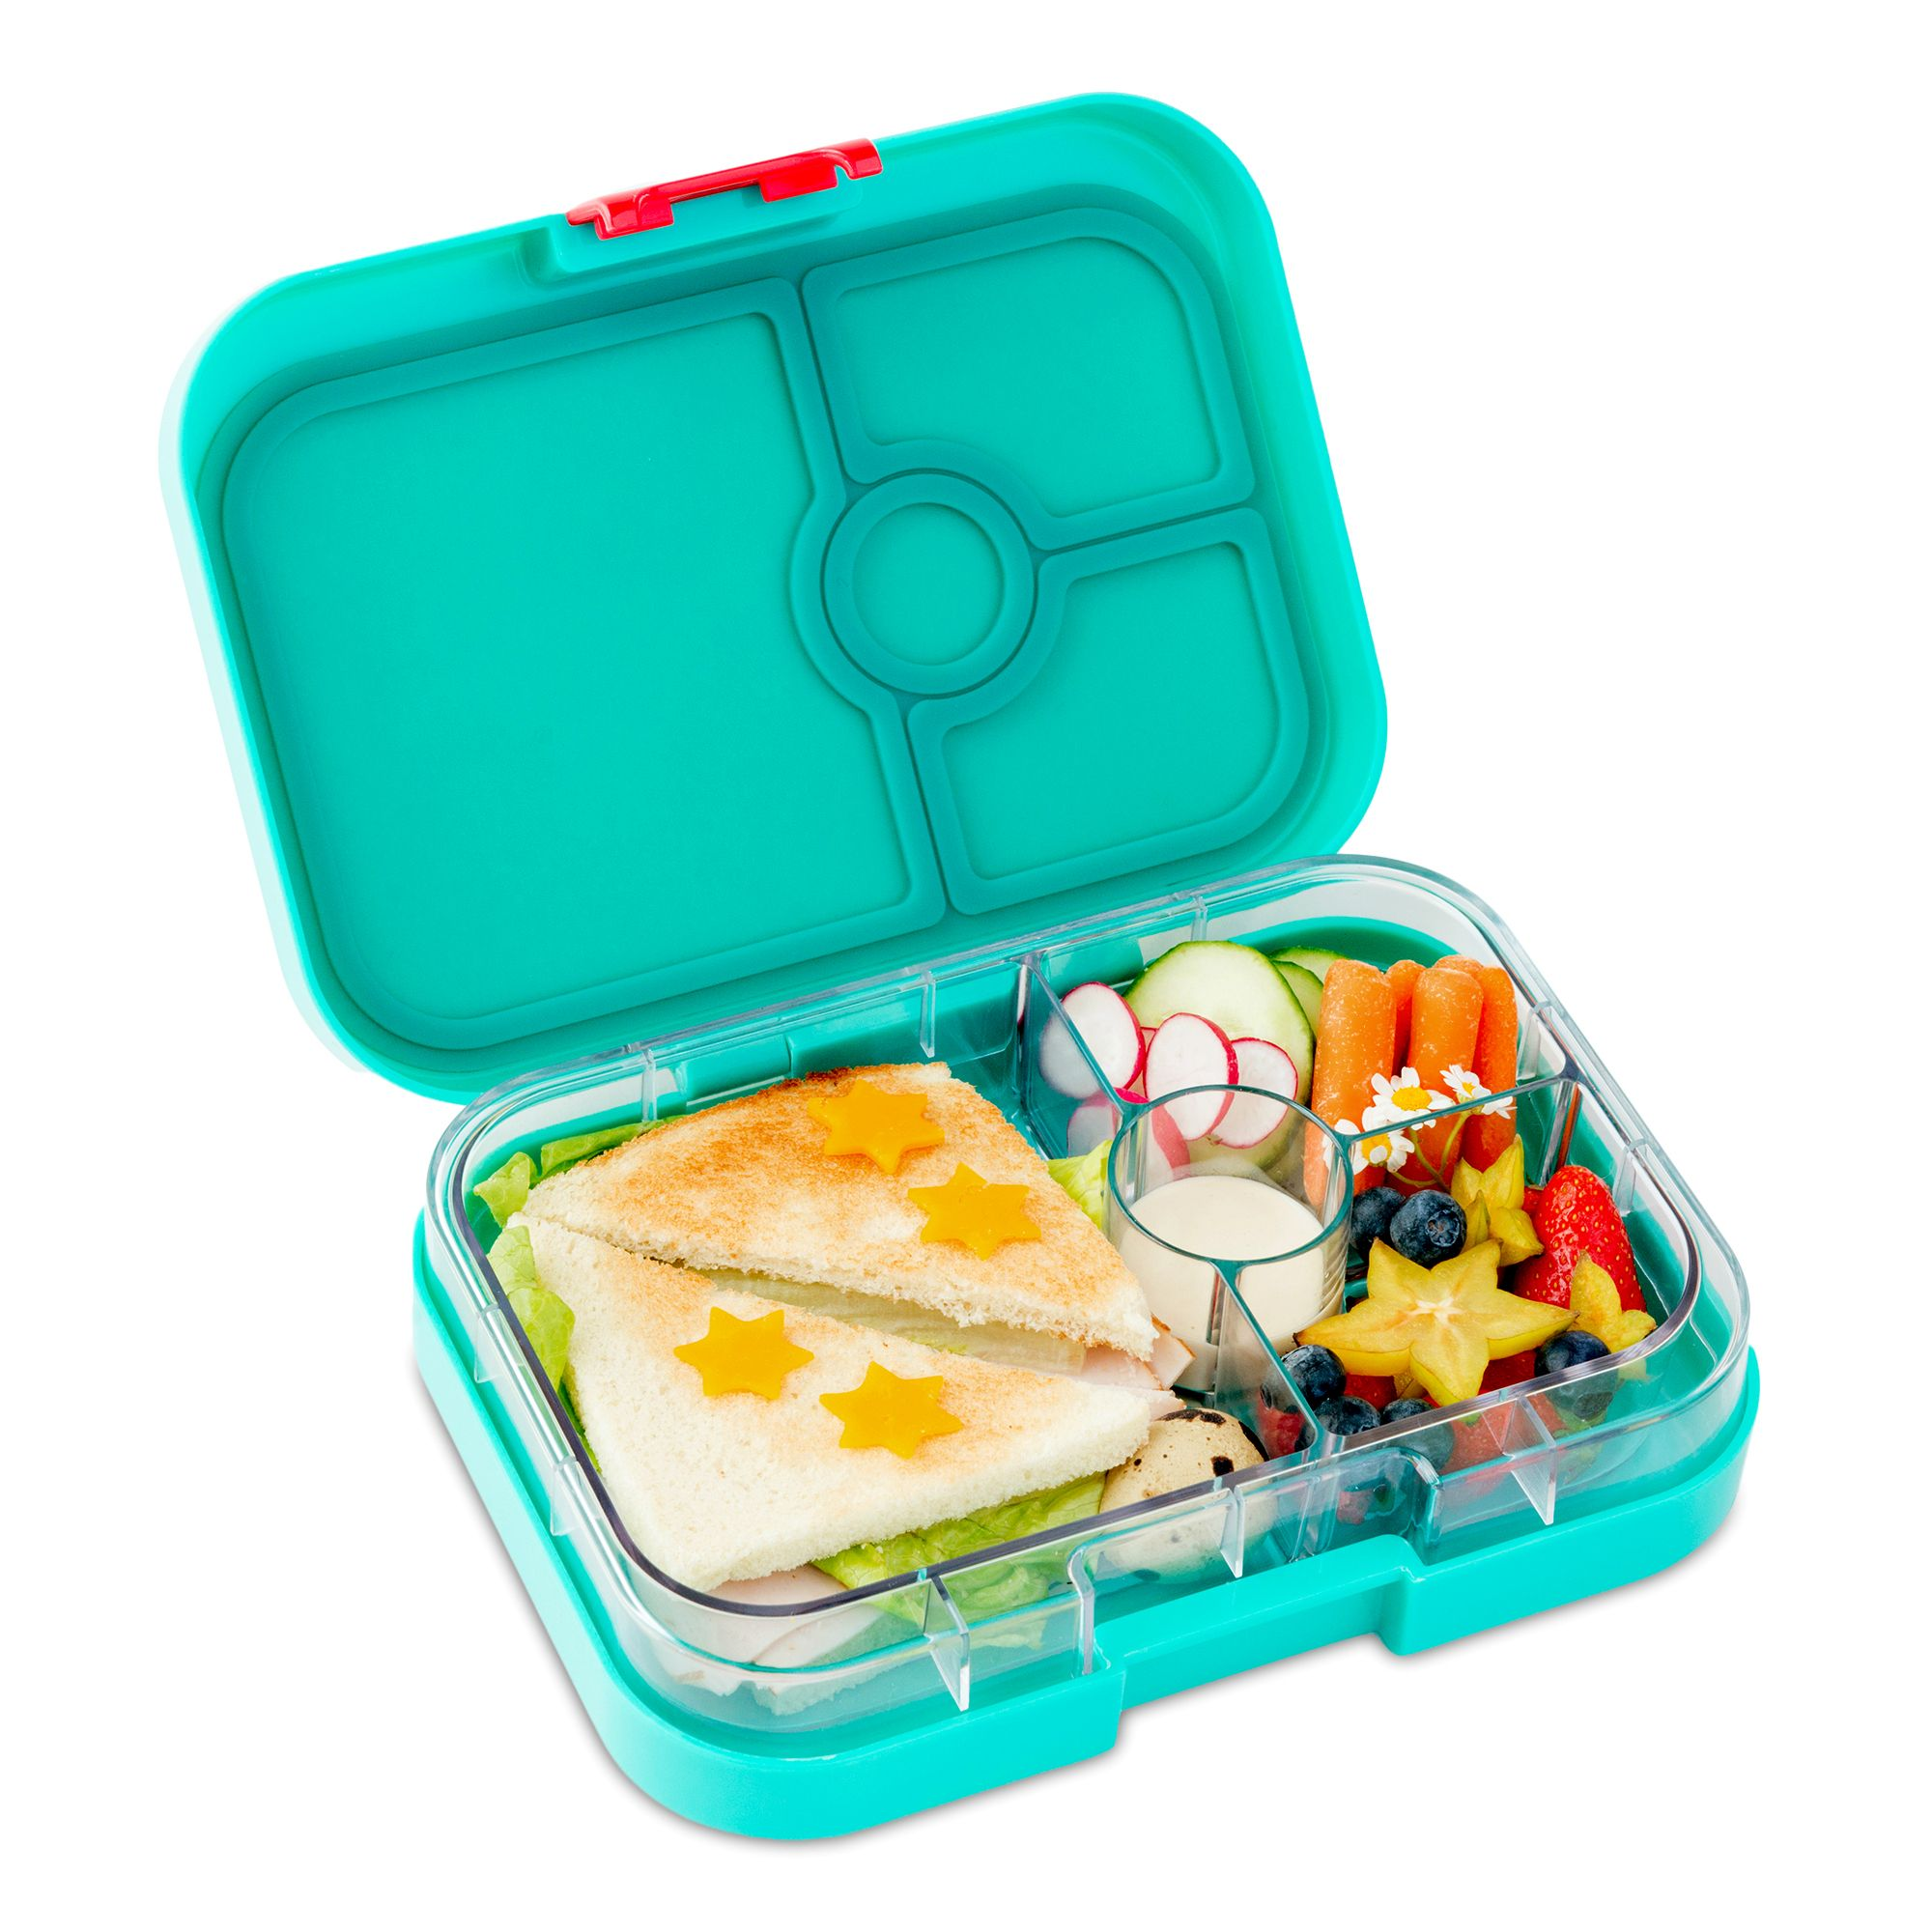 4-compartment food tray (illustrated) Includes exterior box and tray insert with Tropical food themed illustrations. 3 Cup volume: One 2 cup sandwich/salad-